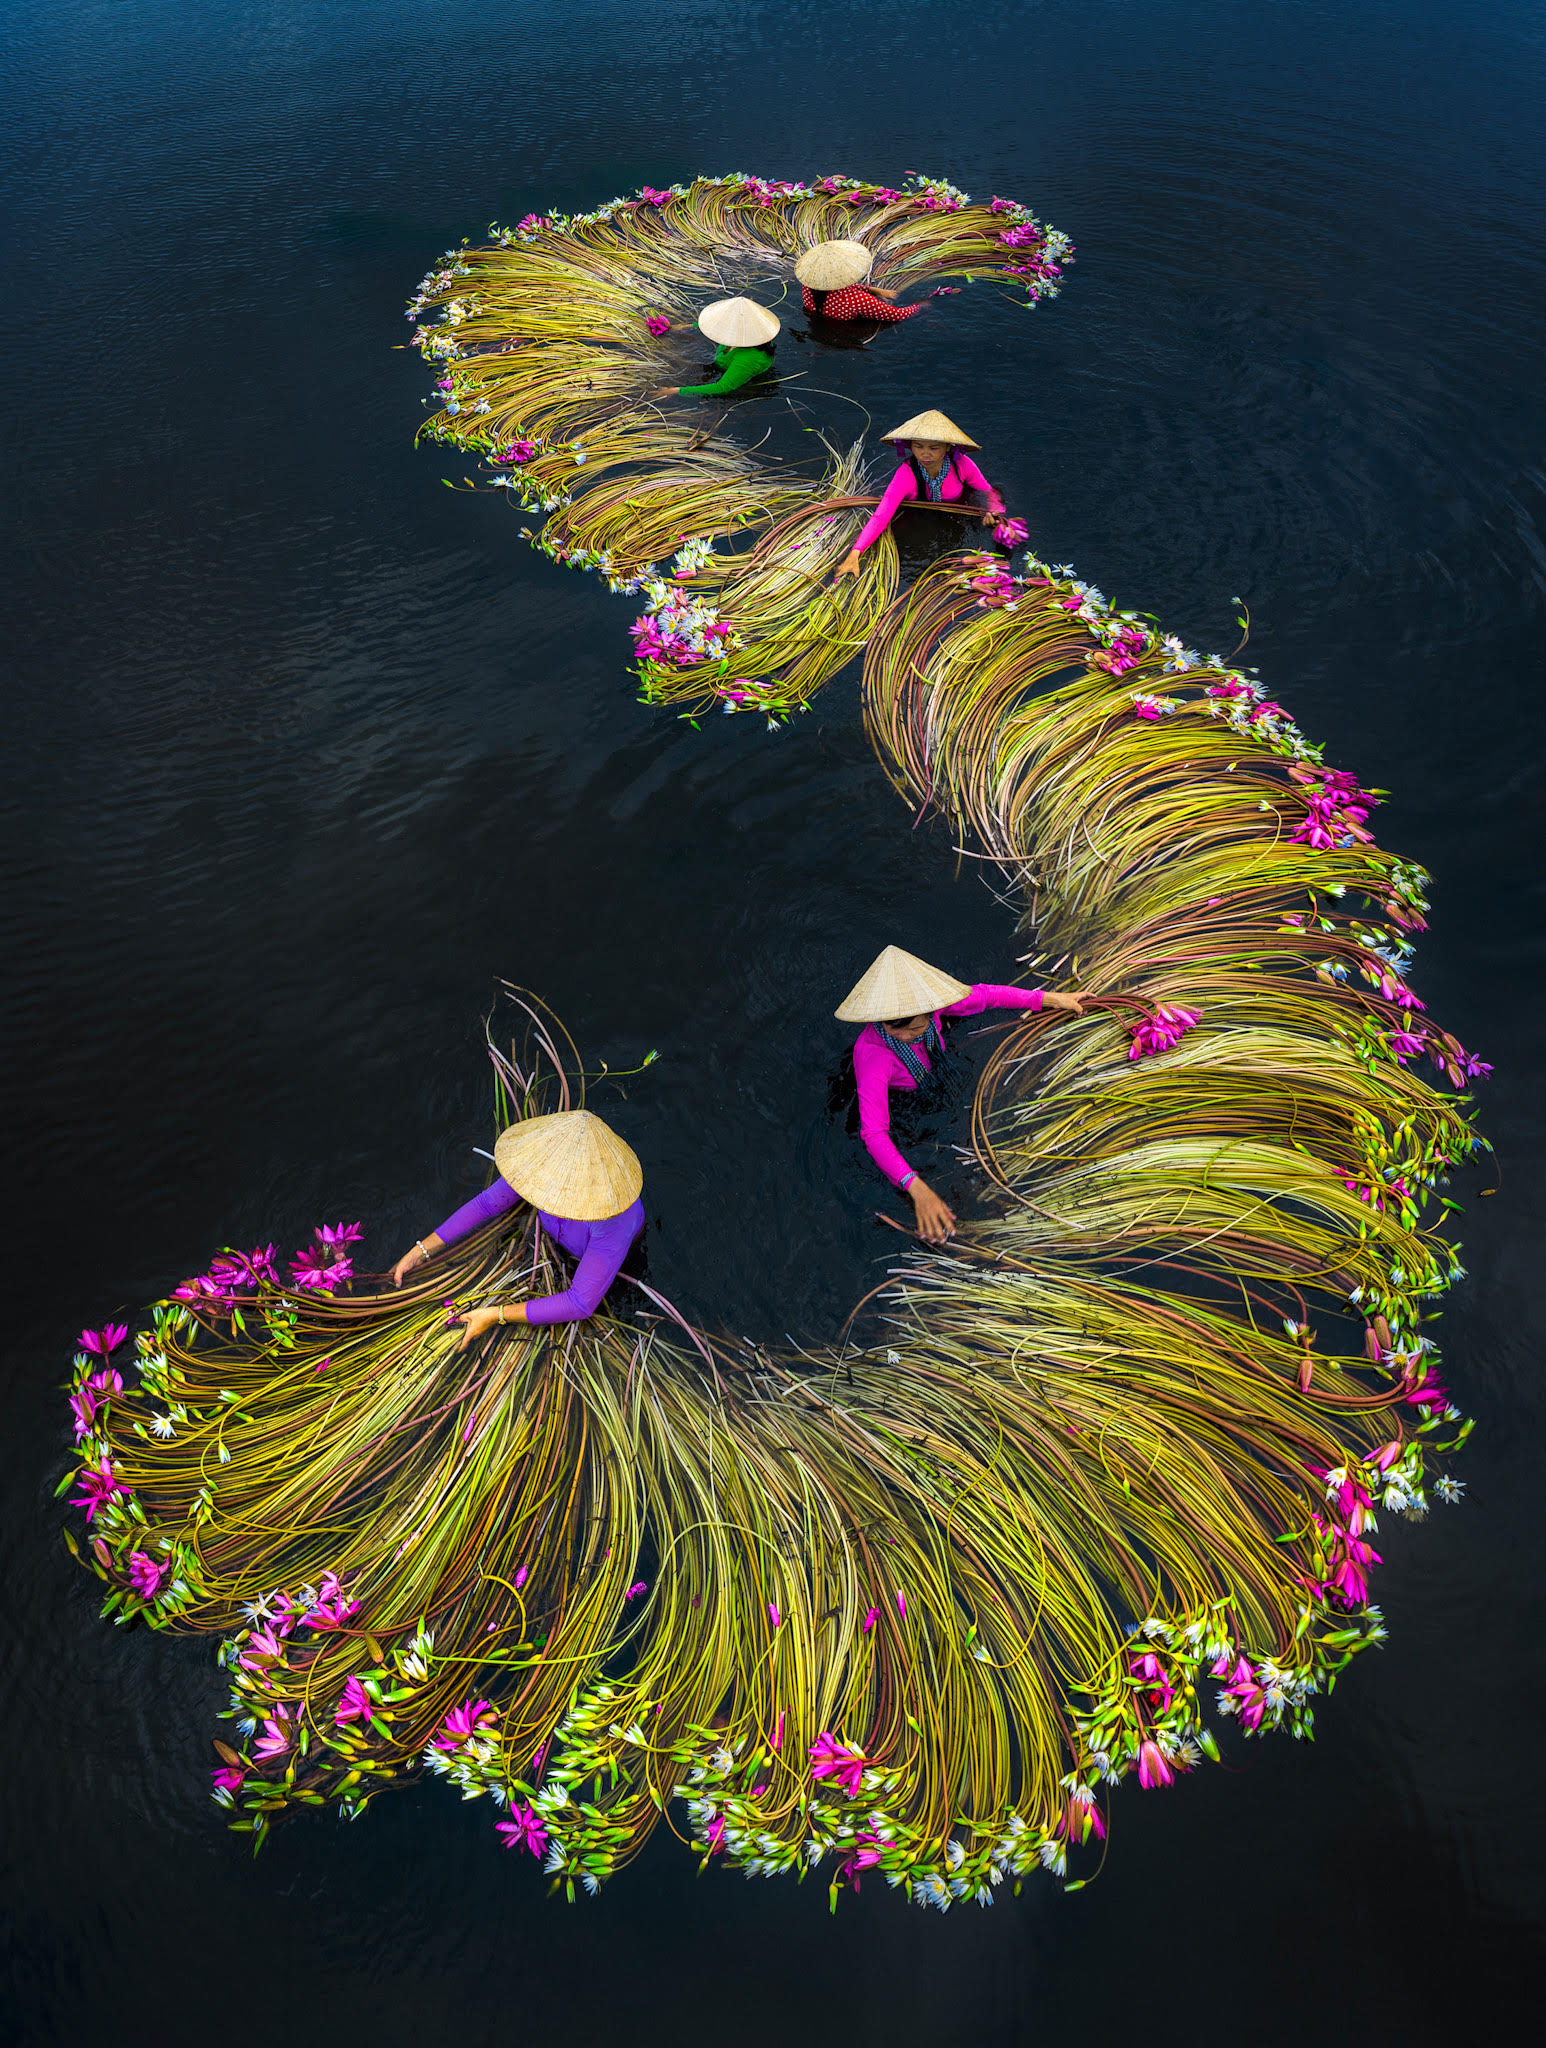 Vivid Photographs by Trung Huy Pham Capture Annual Water Lily Harvest in Vietnam